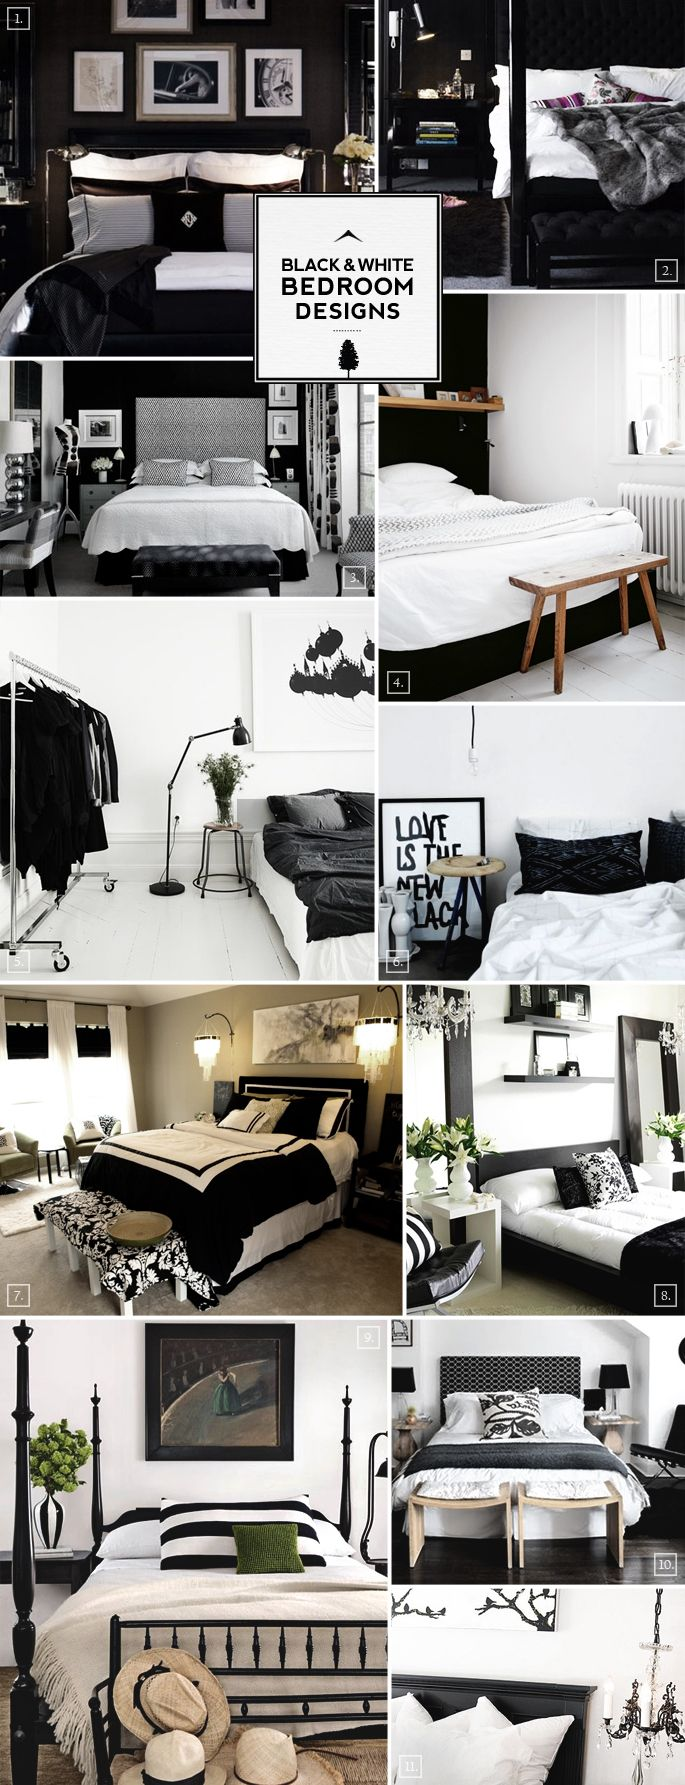 Best 25+ Black bedroom design ideas on Pinterest | Black bedrooms ...